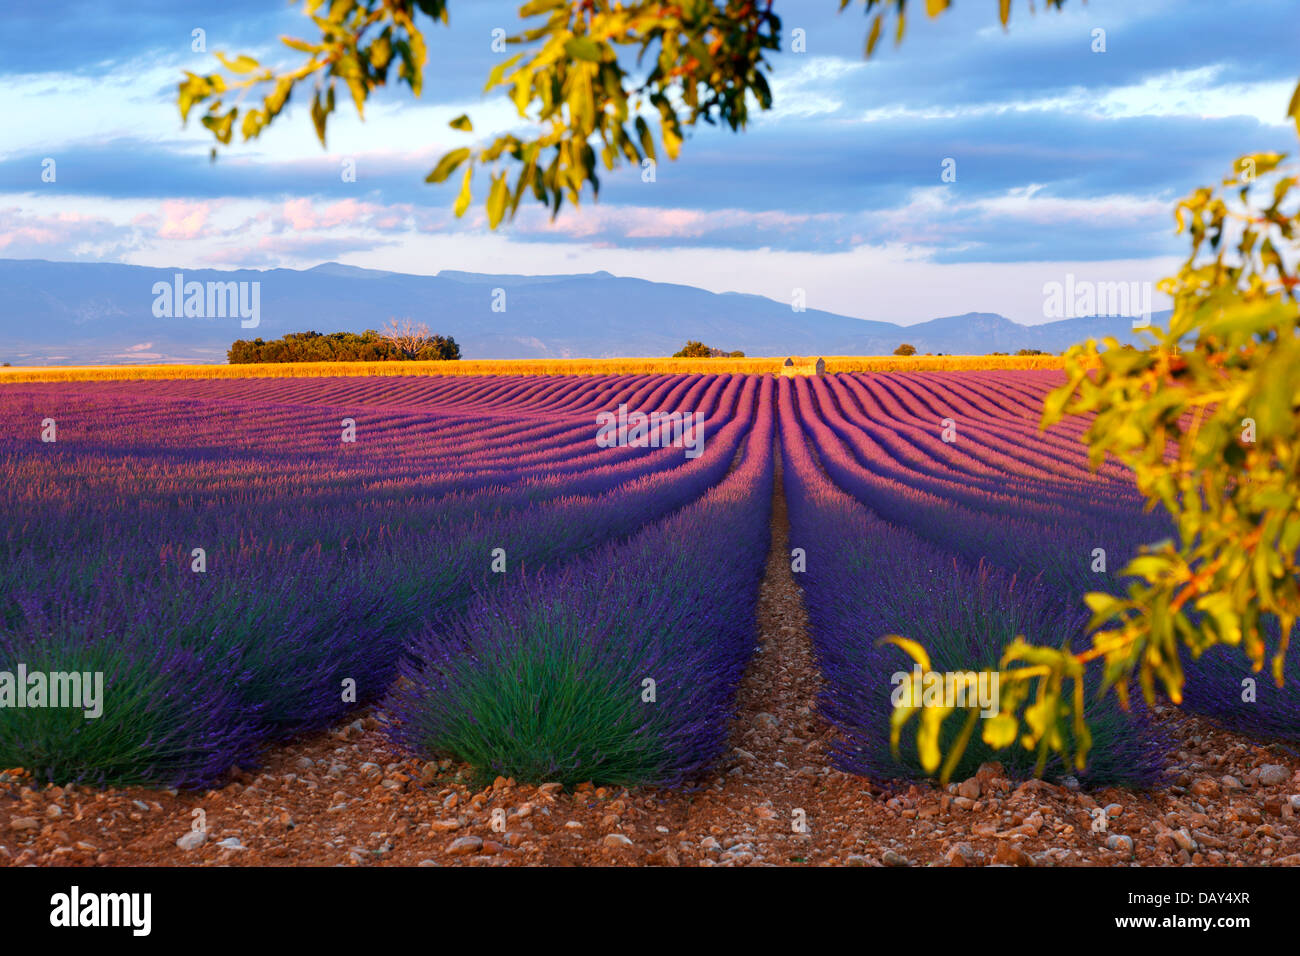 Beautiful lavender field in Provence, France. - Stock Image